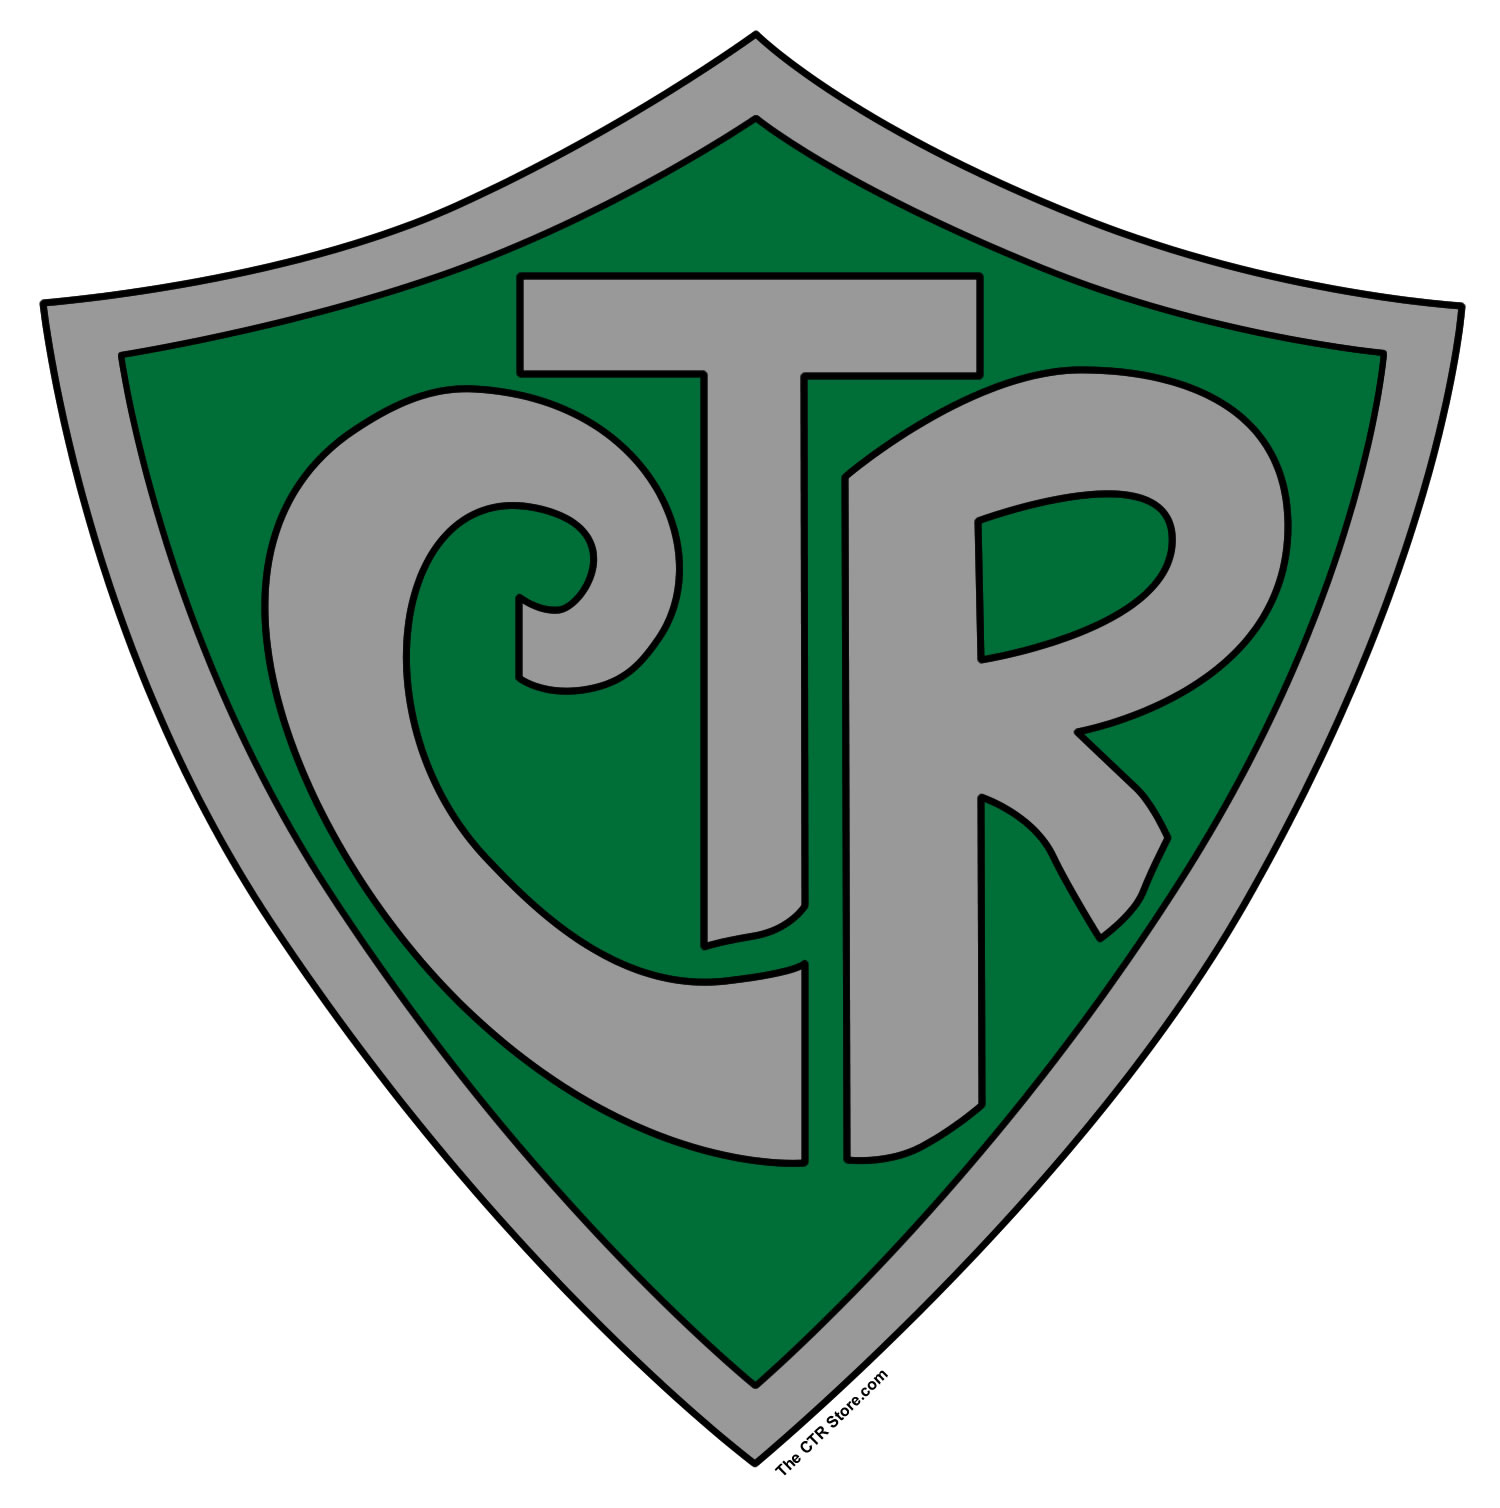 Ctr Shield Lds Clipart.